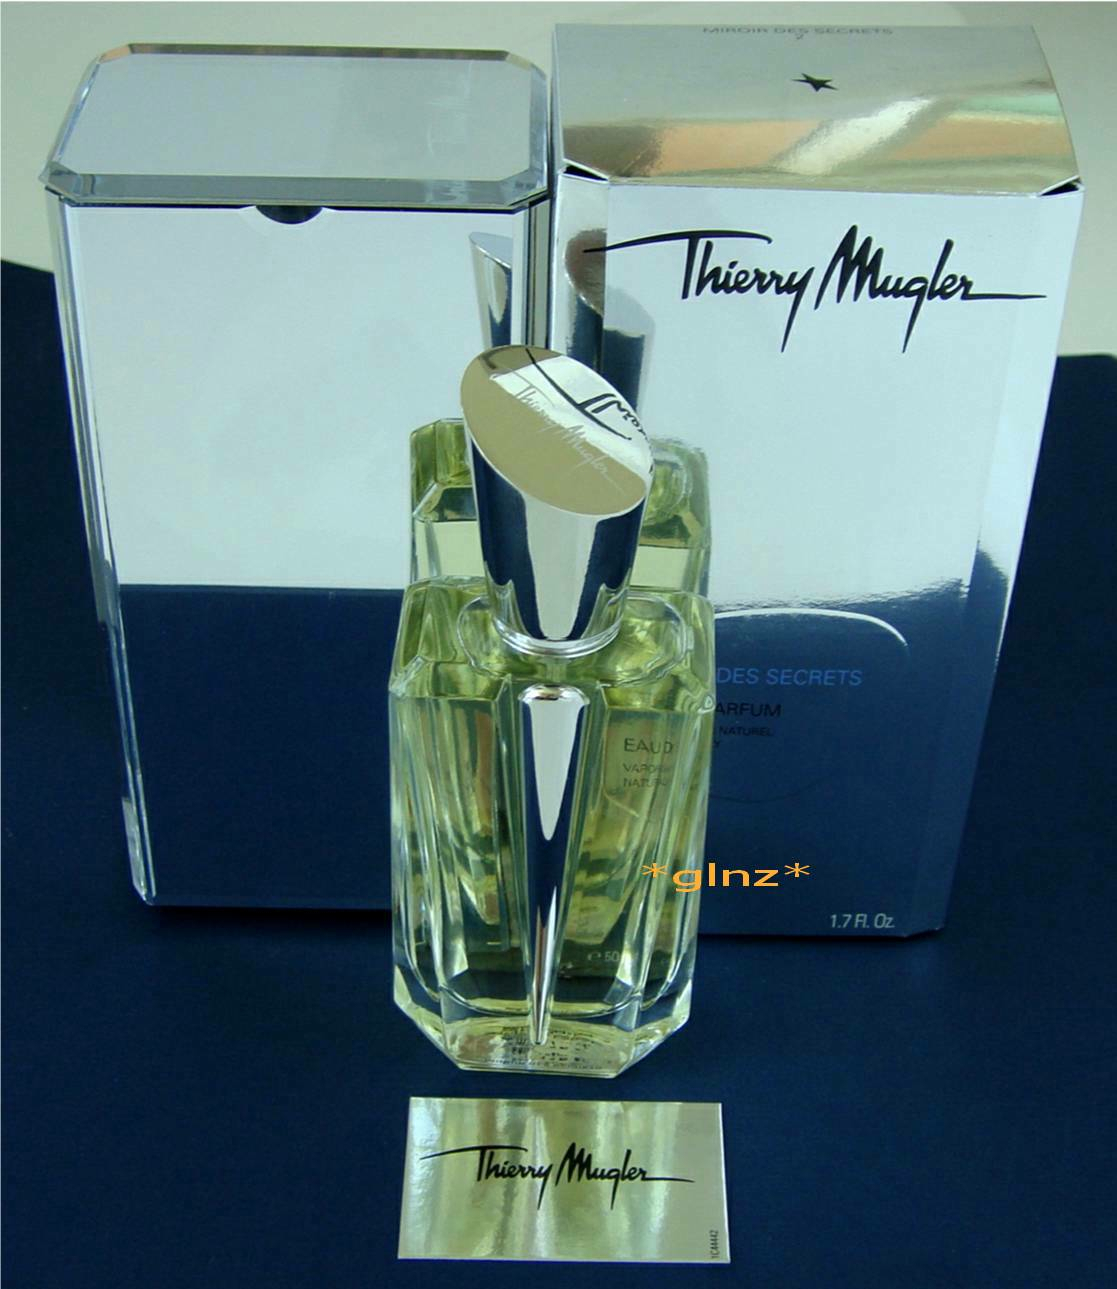 The perfume paradox worldofbeautytips for Thierry mugler miroir